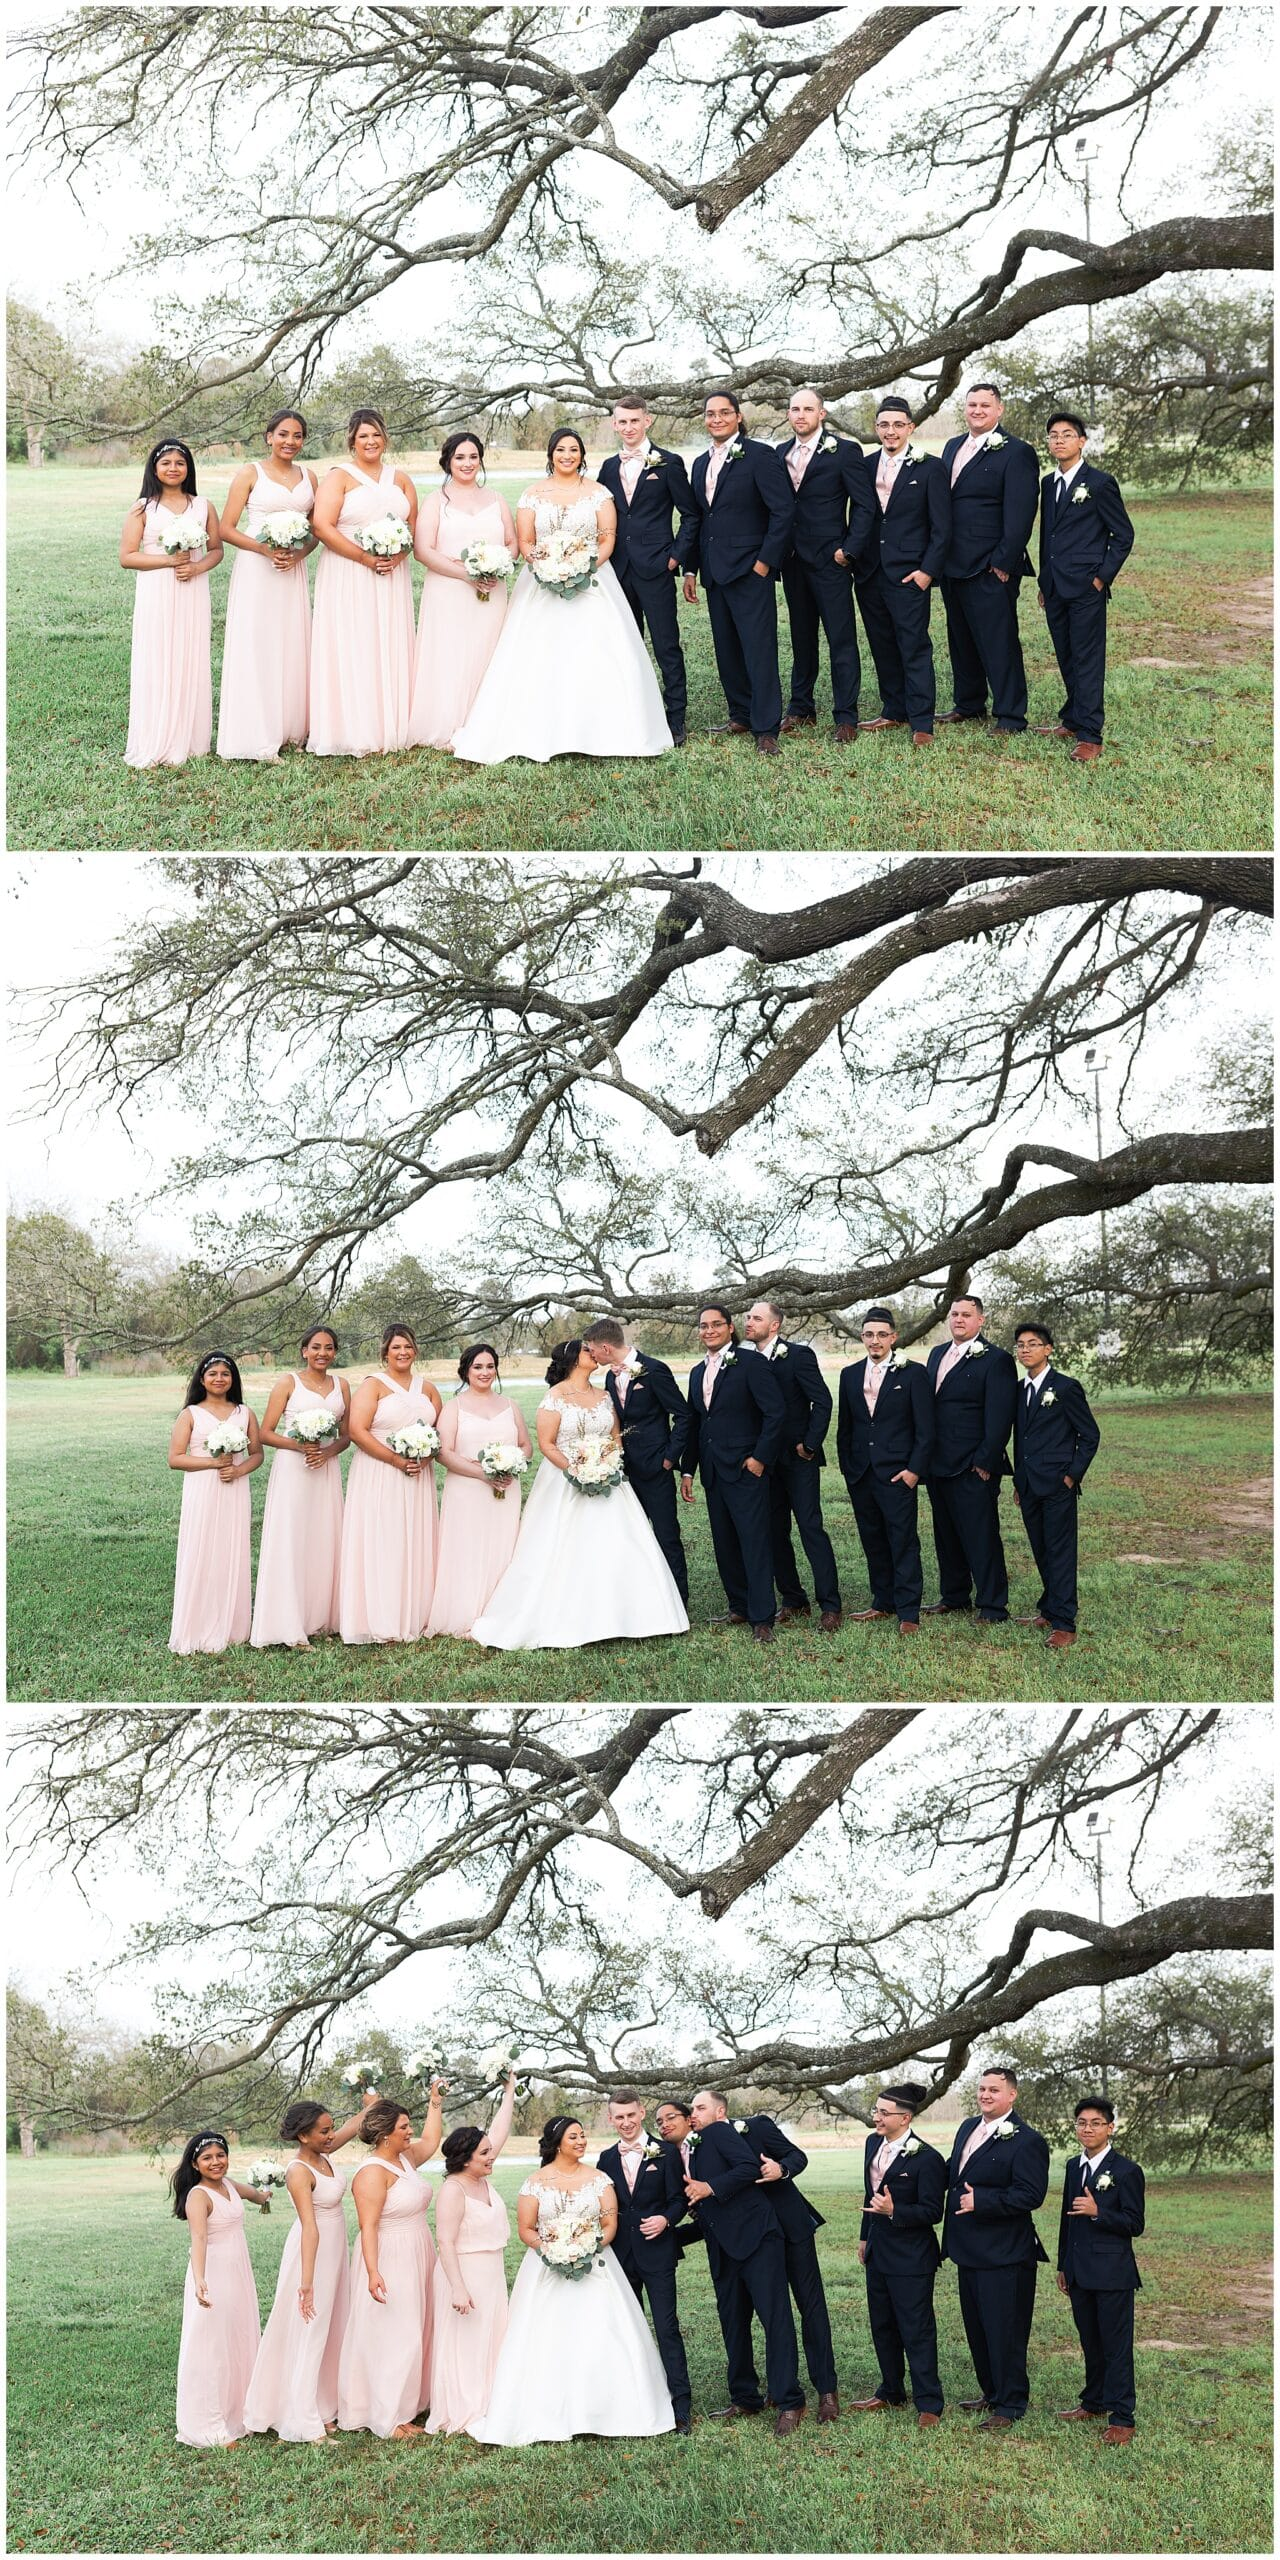 wedding party portraits at Bridal Oaks in Cypress Texas by Houston wedding photographer Swish and Click Photography